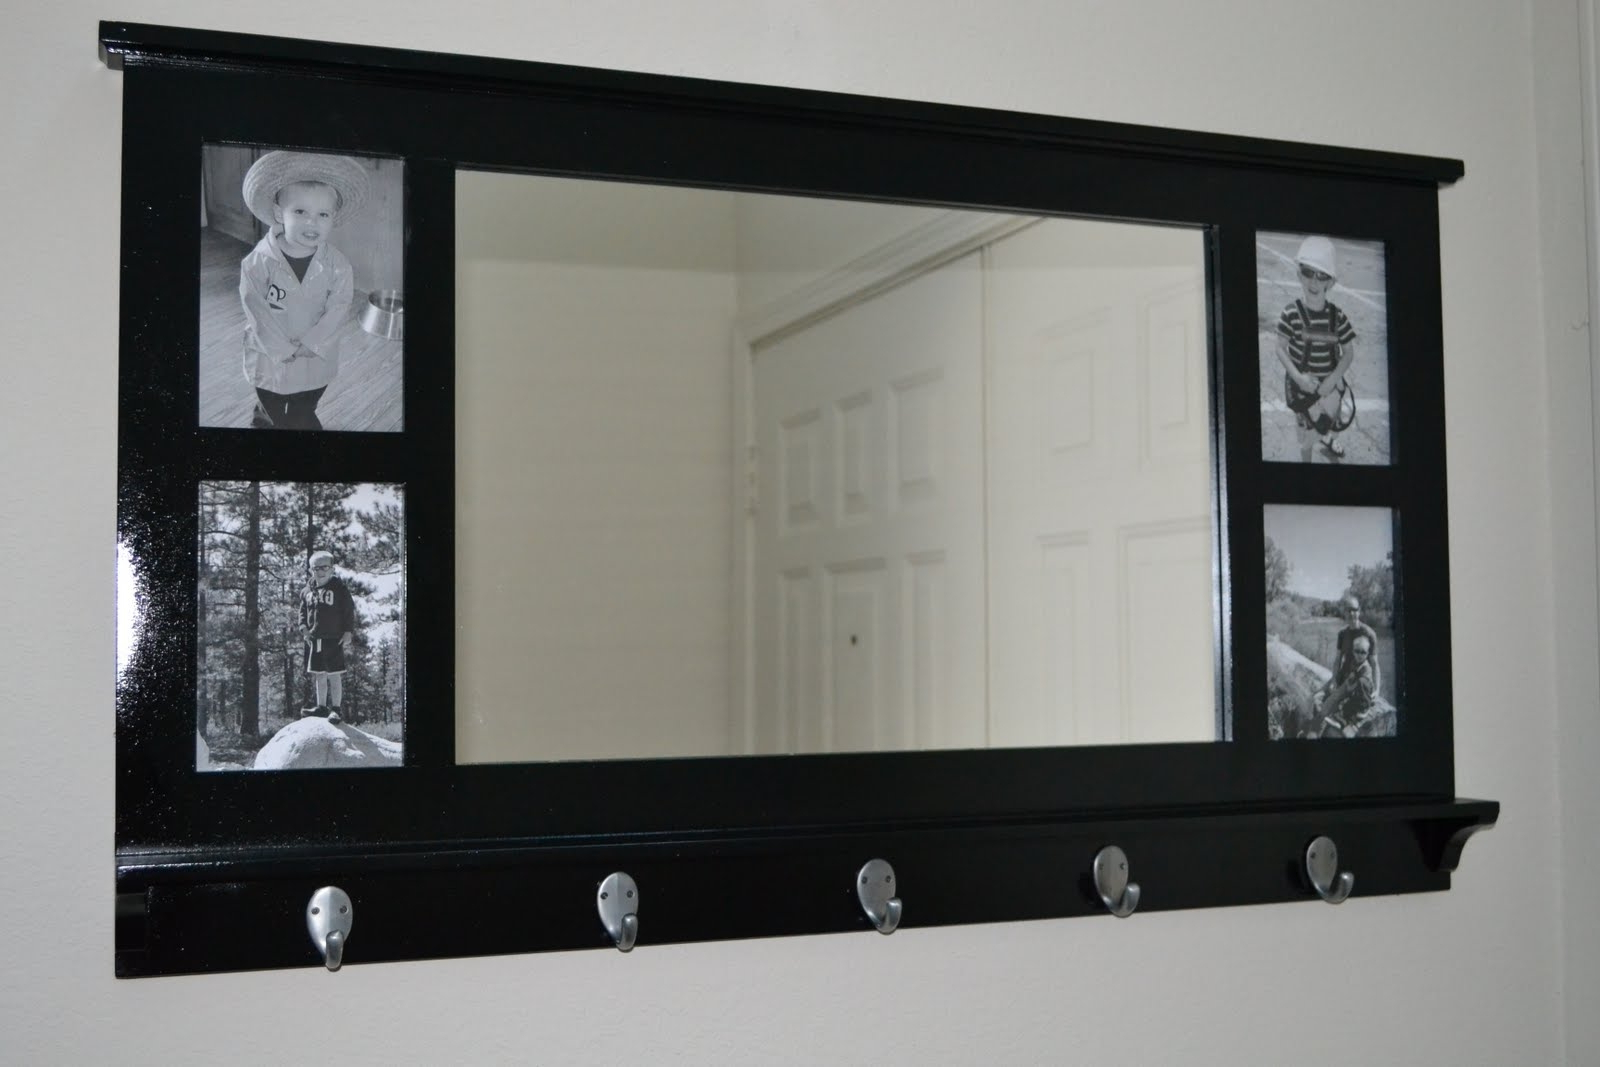 Wall Mirrors With Shelf And Hooks With Regard To Well Liked Wall Shelves With Mirror And Hooks – Webfaceconsult (View 18 of 20)